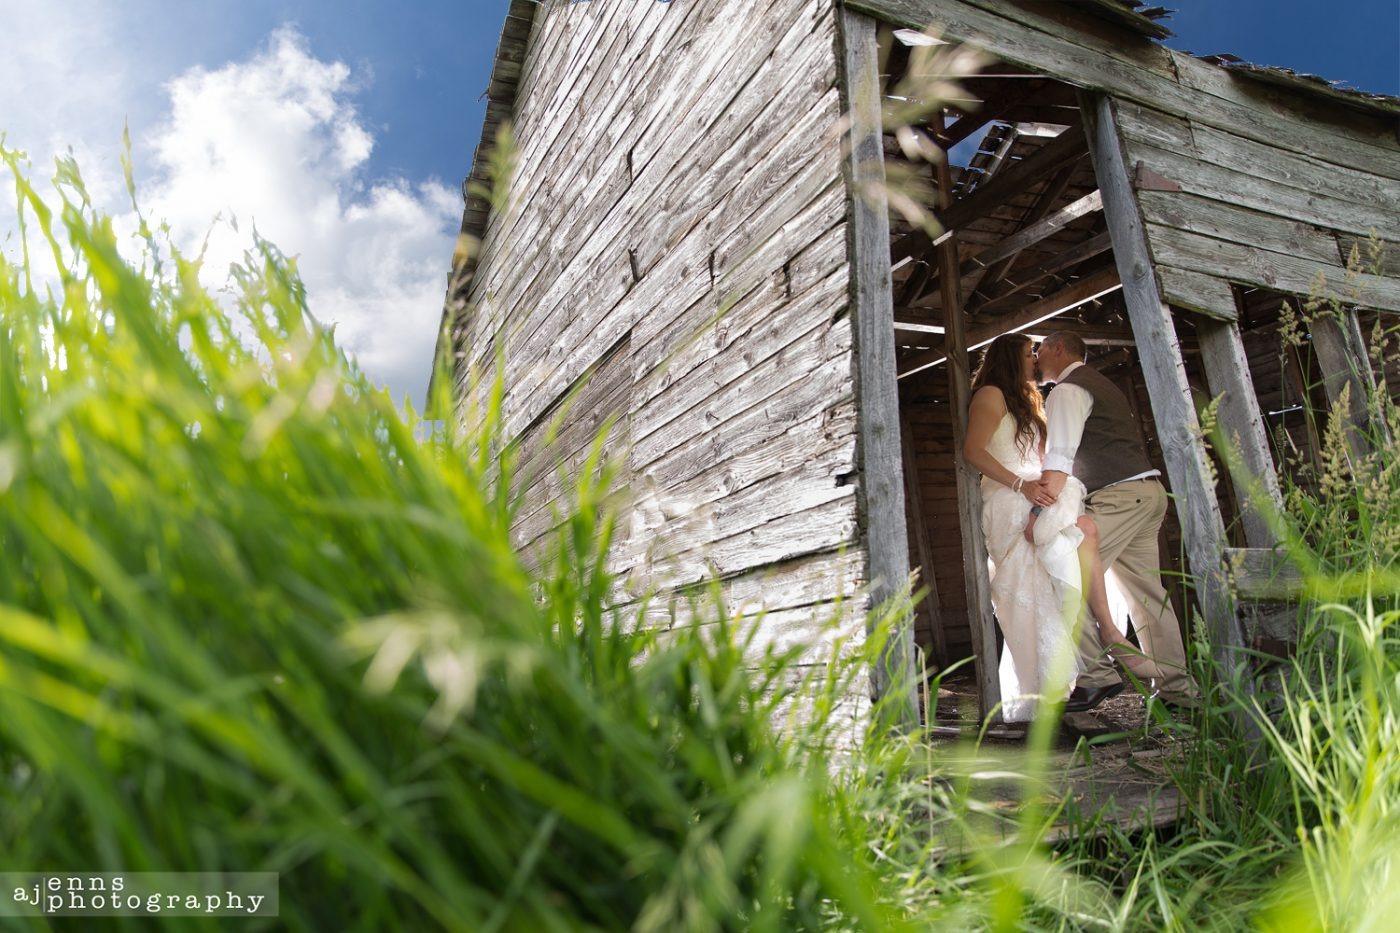 The bride and groom in a old decrepit building